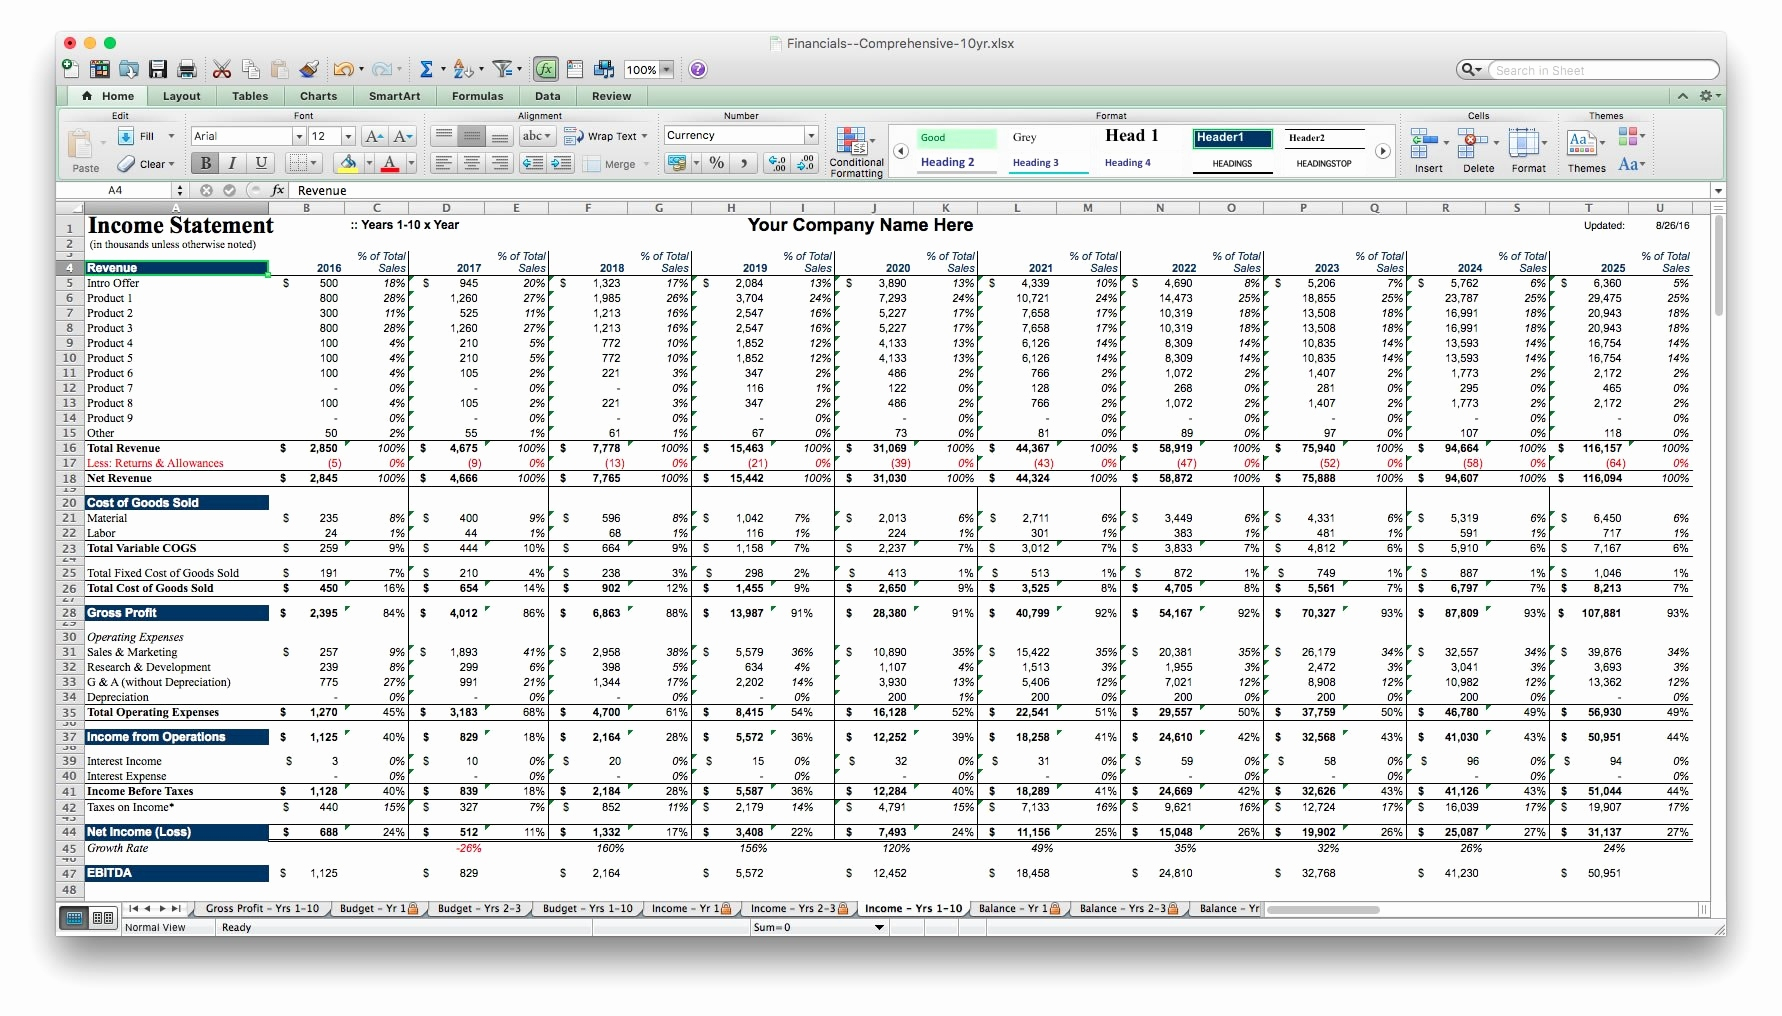 Financial Planning Spreadsheet For Startups On Spreadsheet For Mac Inside Financial Planning Spreadsheet